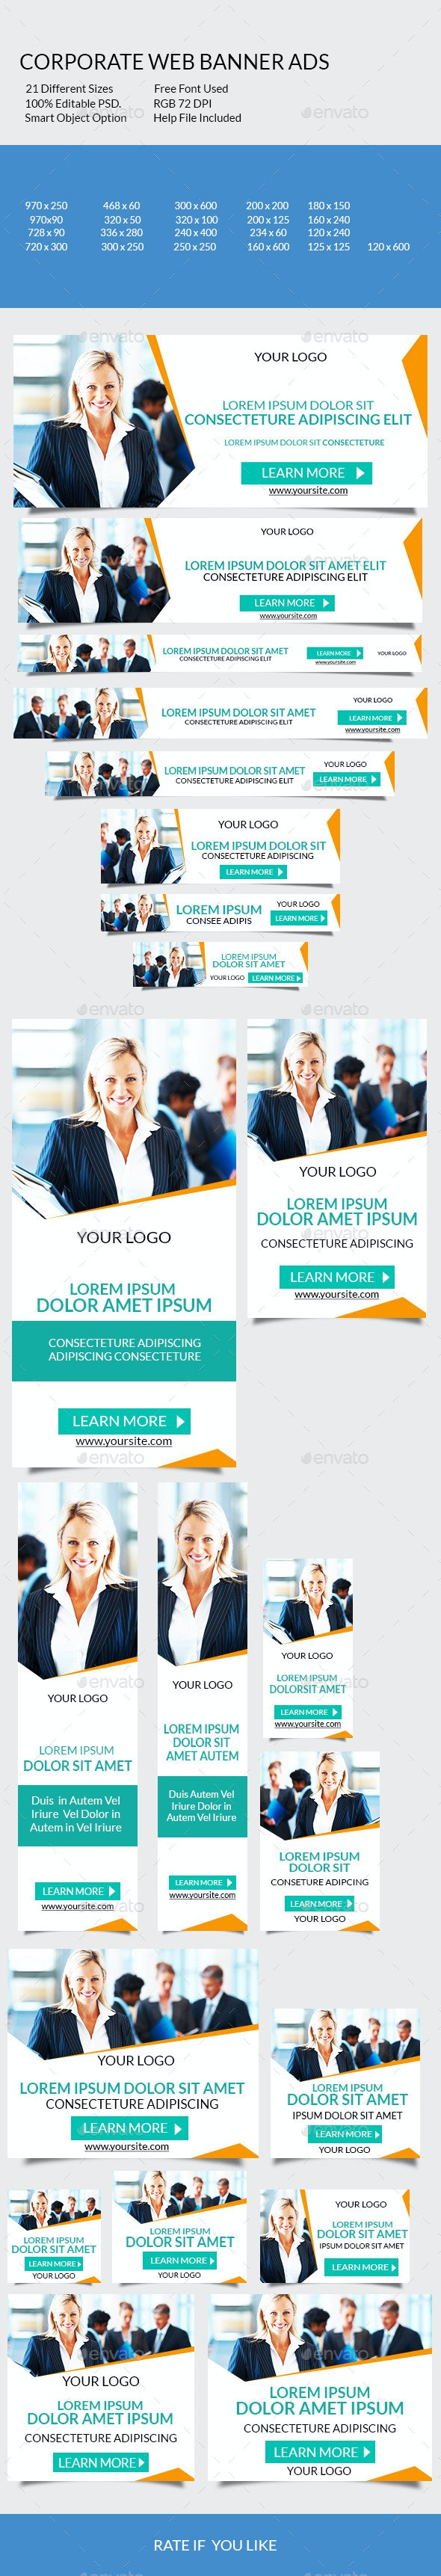 Corporate Web Banner Ads - Banners & Ads Web Elements